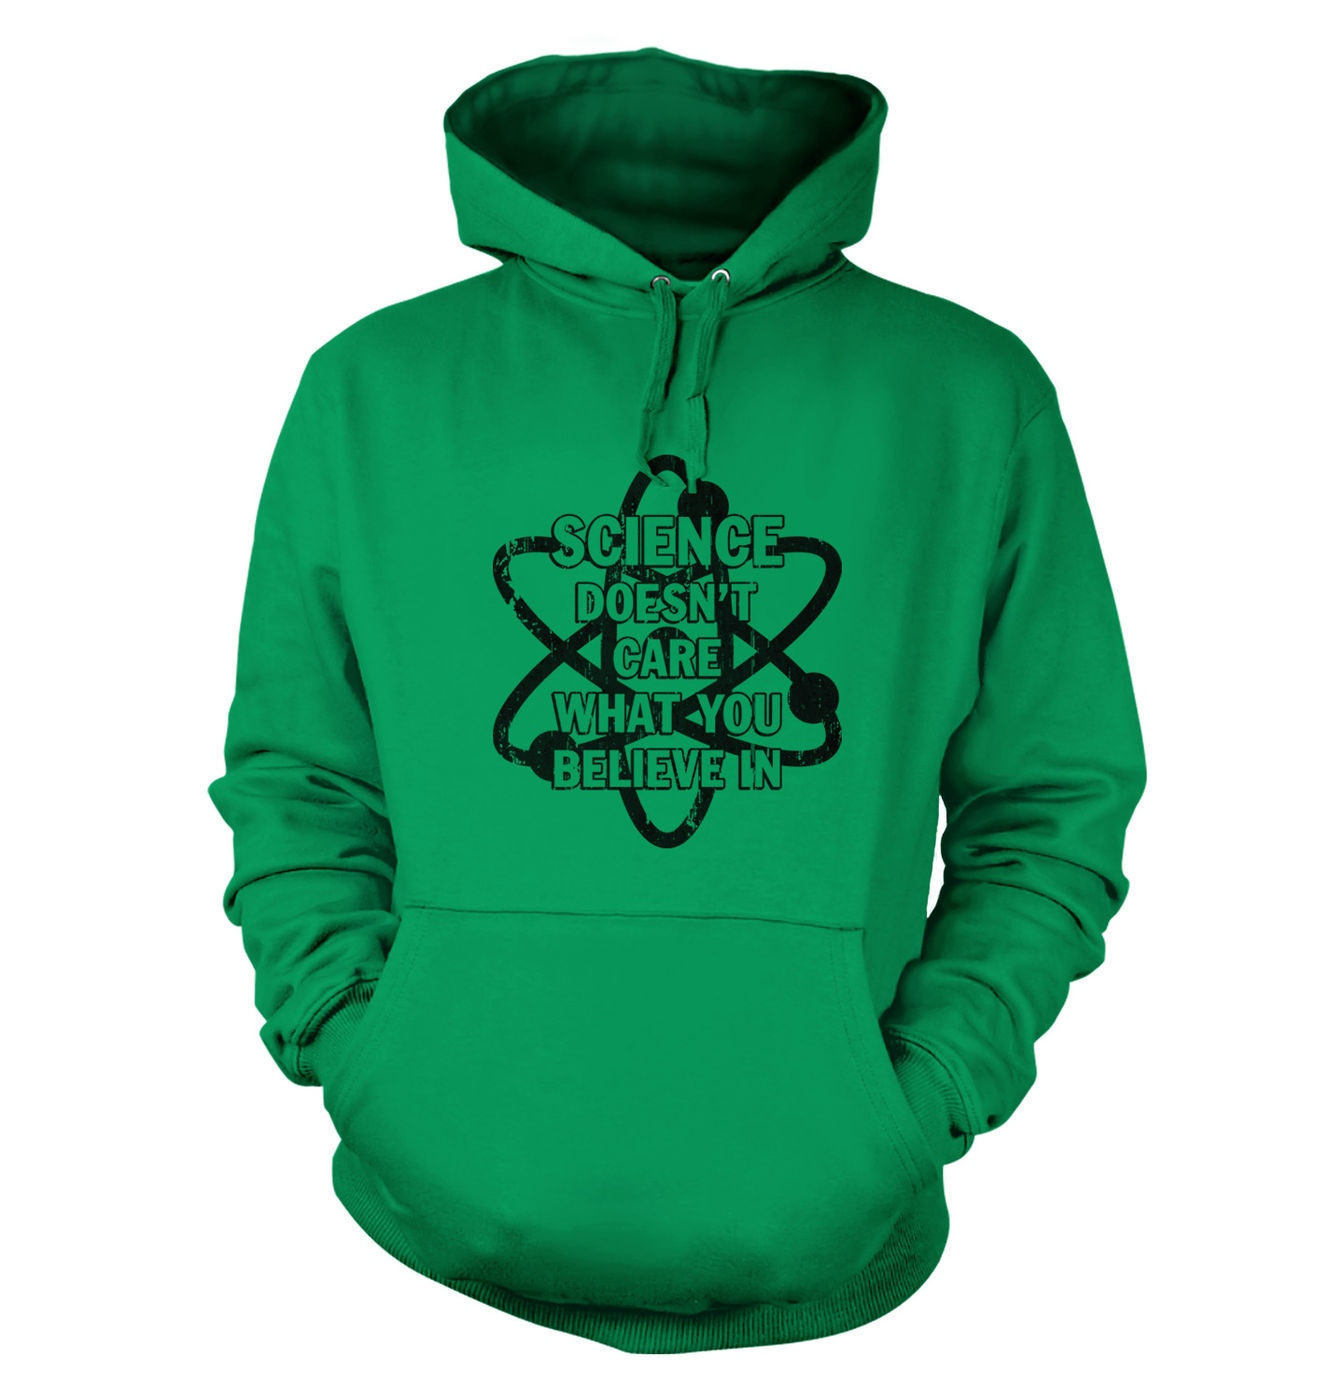 Science Doesn't Care hoodie by Something Geeky